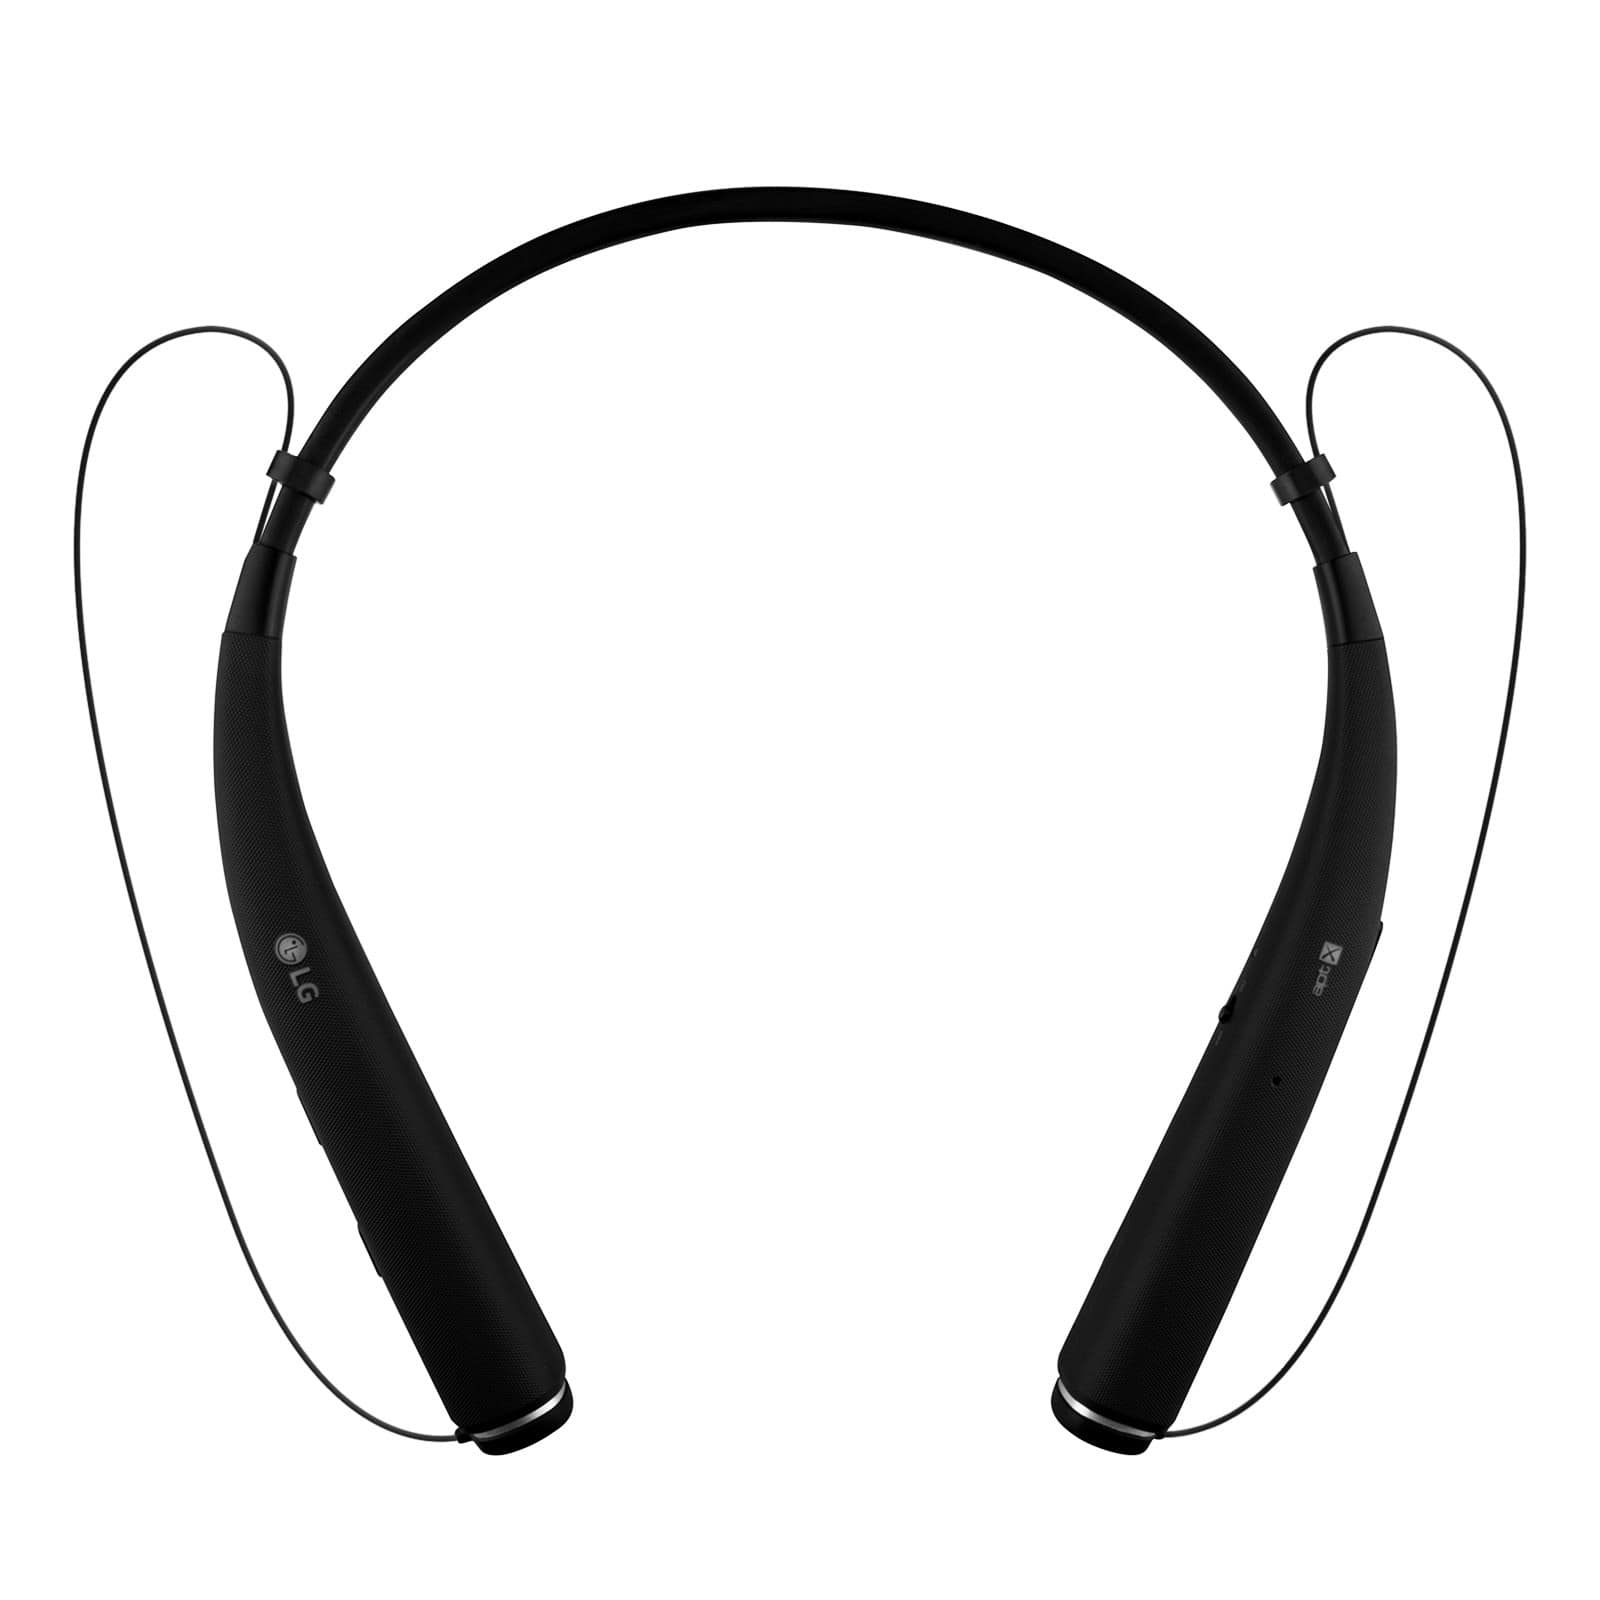 LG HBS-780 Tone Pro Wireless Bluetooth Stereo Headset (refurb) $25 + free shipping